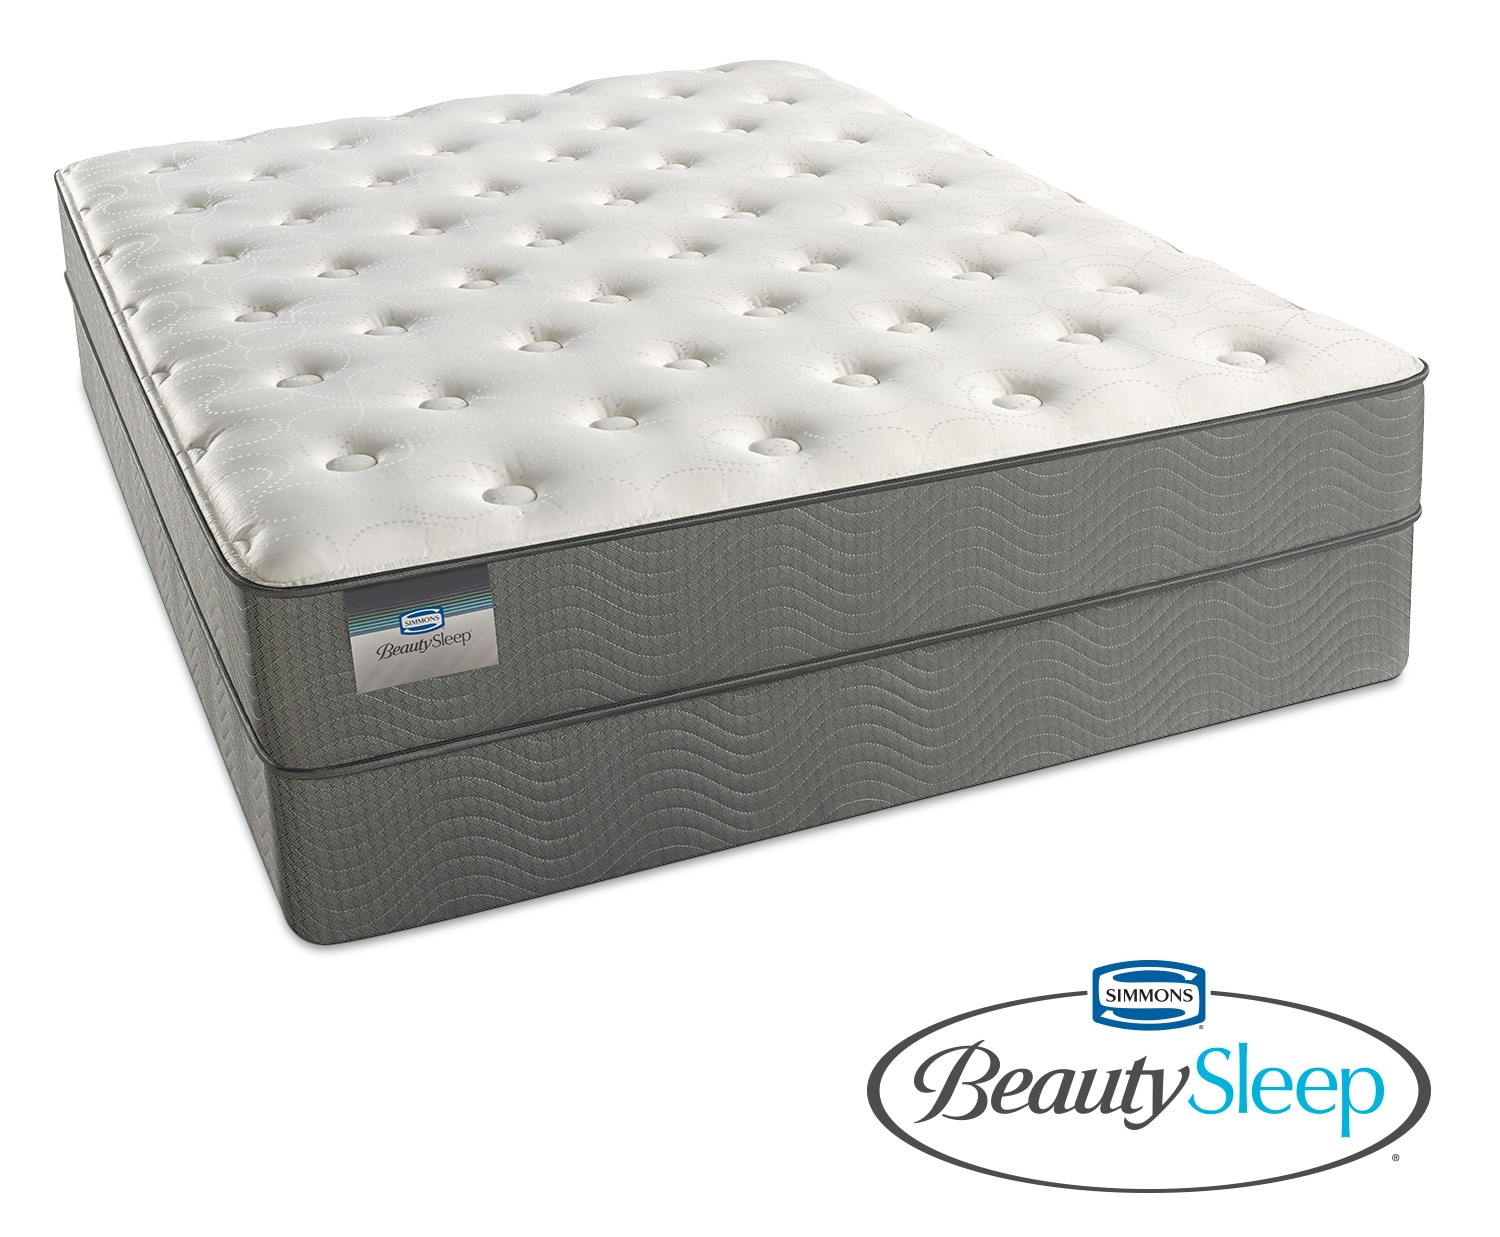 Sapphire Blue Luxury Firm Queen Mattress And Foundation